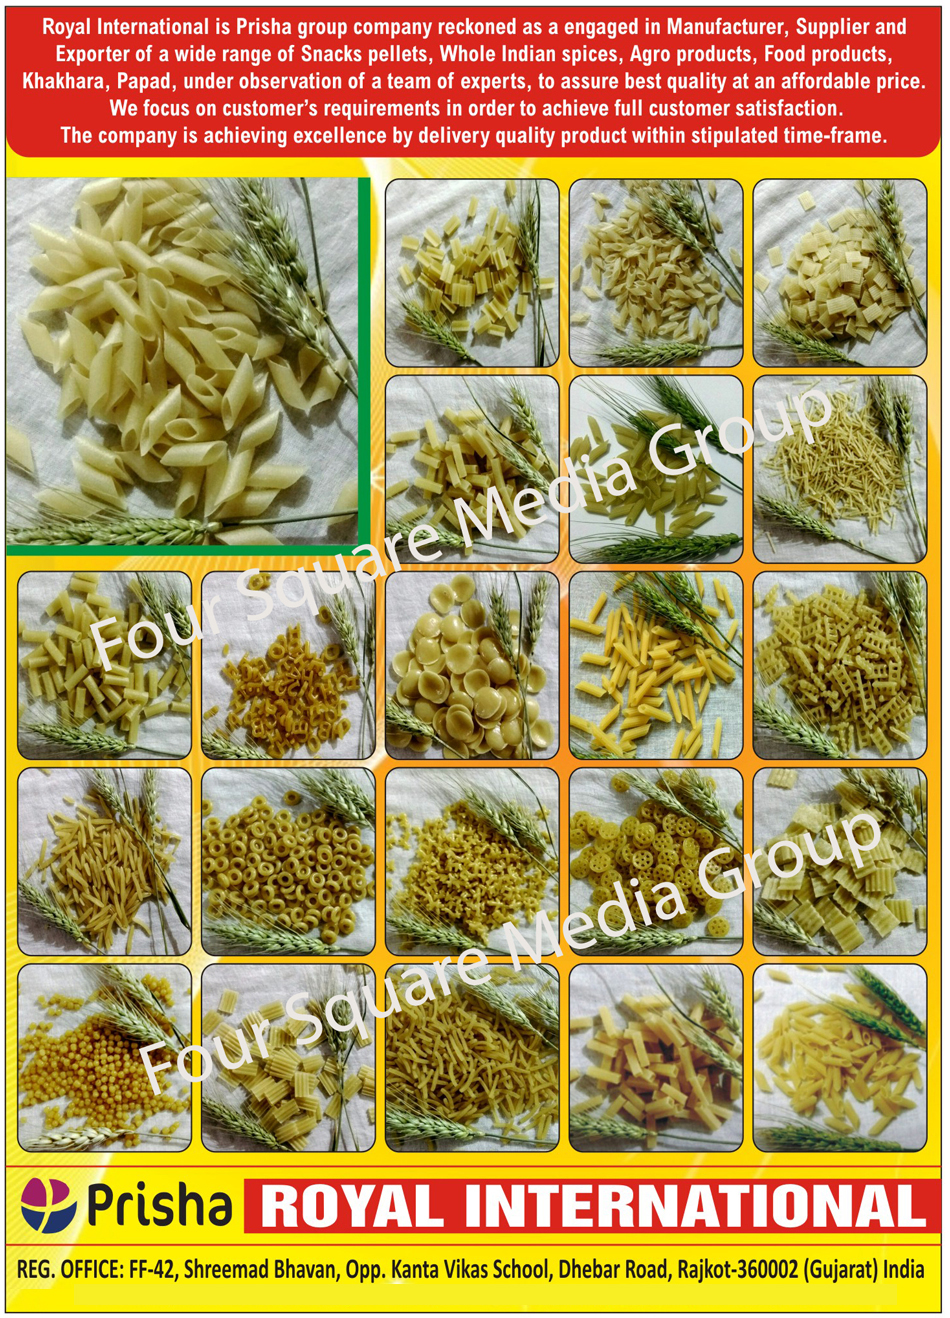 Snack Pellets, Whole Indian Spices, Agro Products, Food Products, Khakhara, Papad, Masala